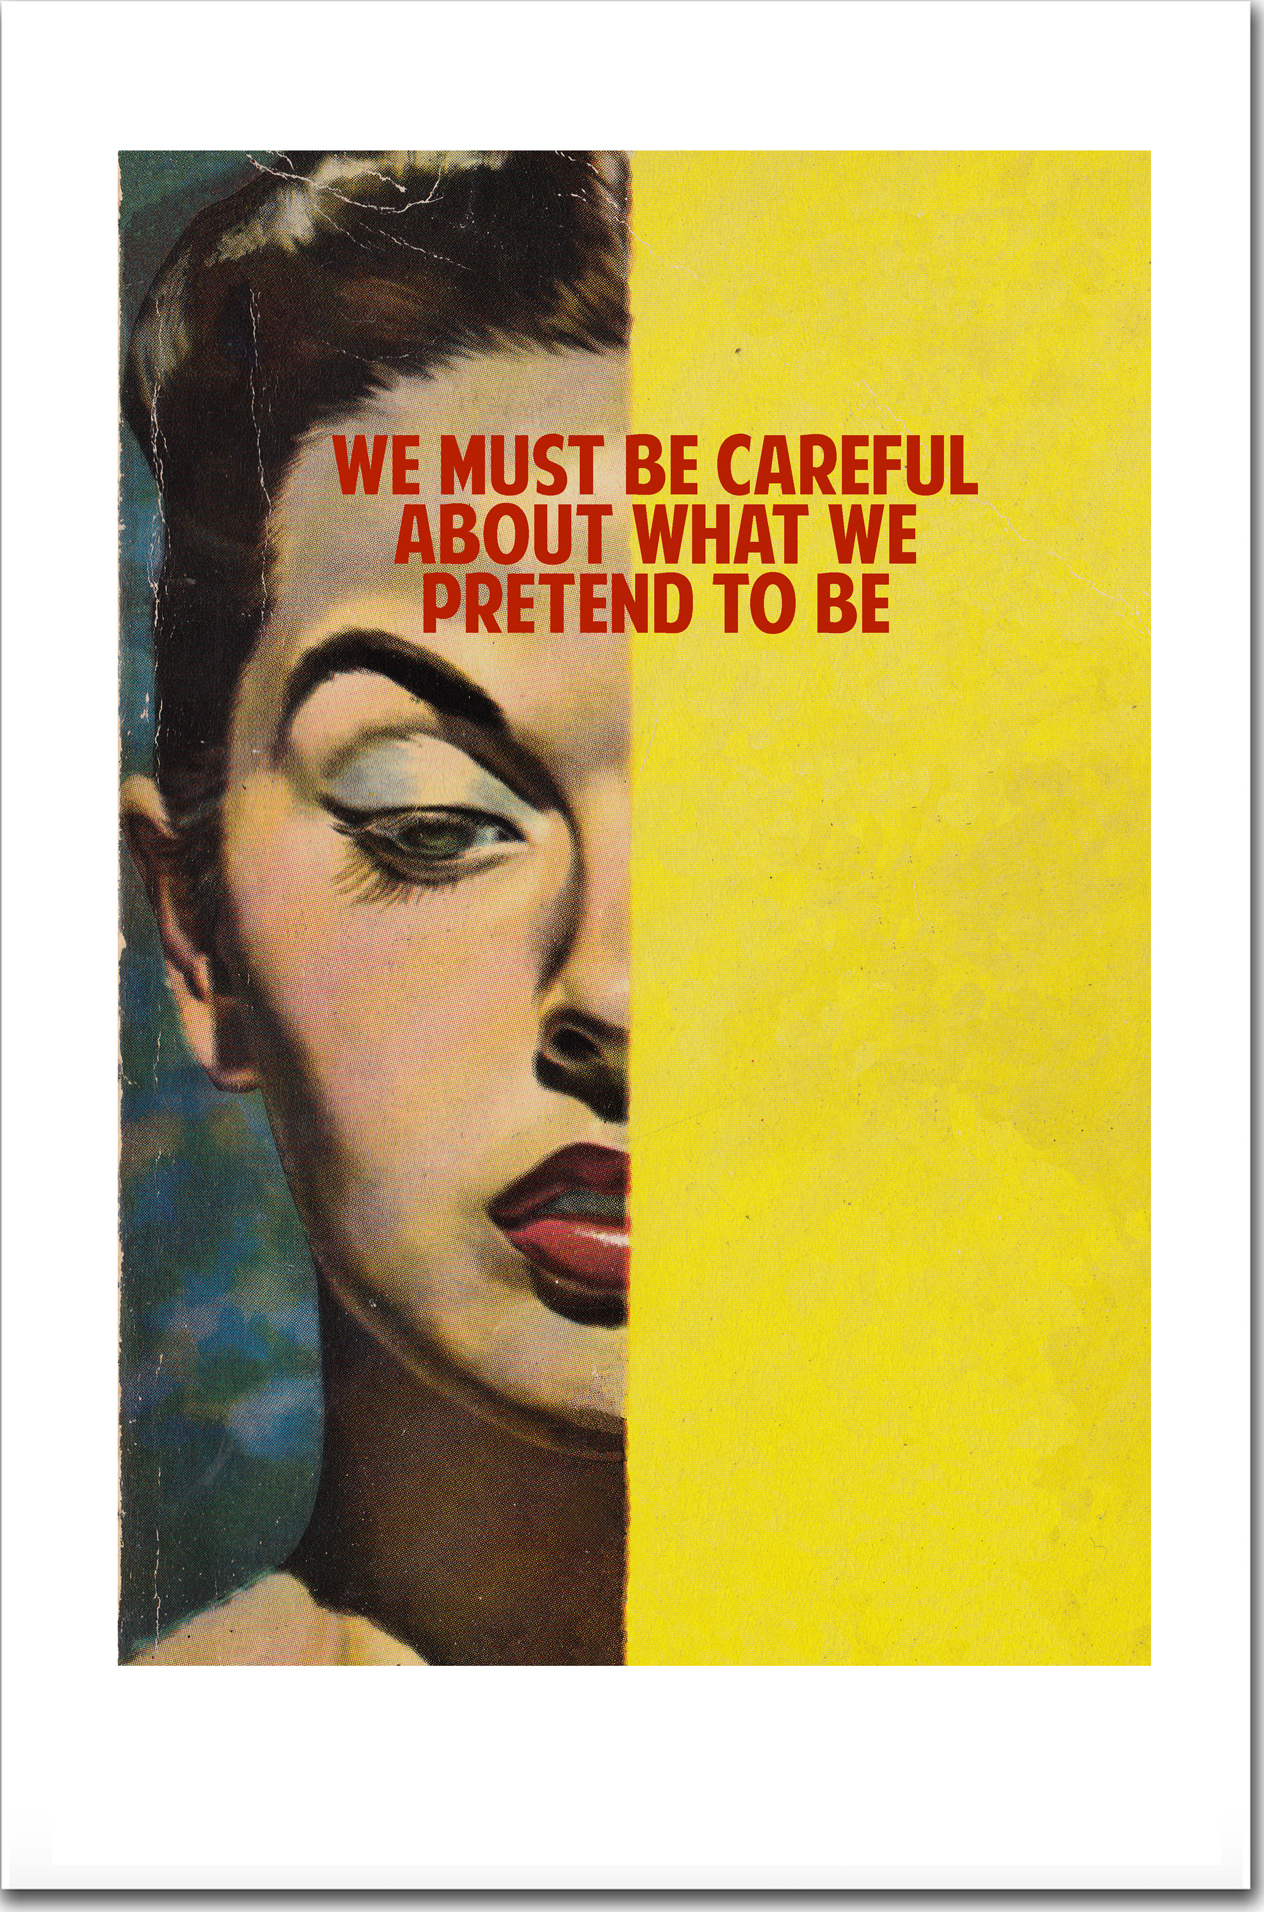 WE MUST BE CAREFUL UNFRAMED PRINT.jpg